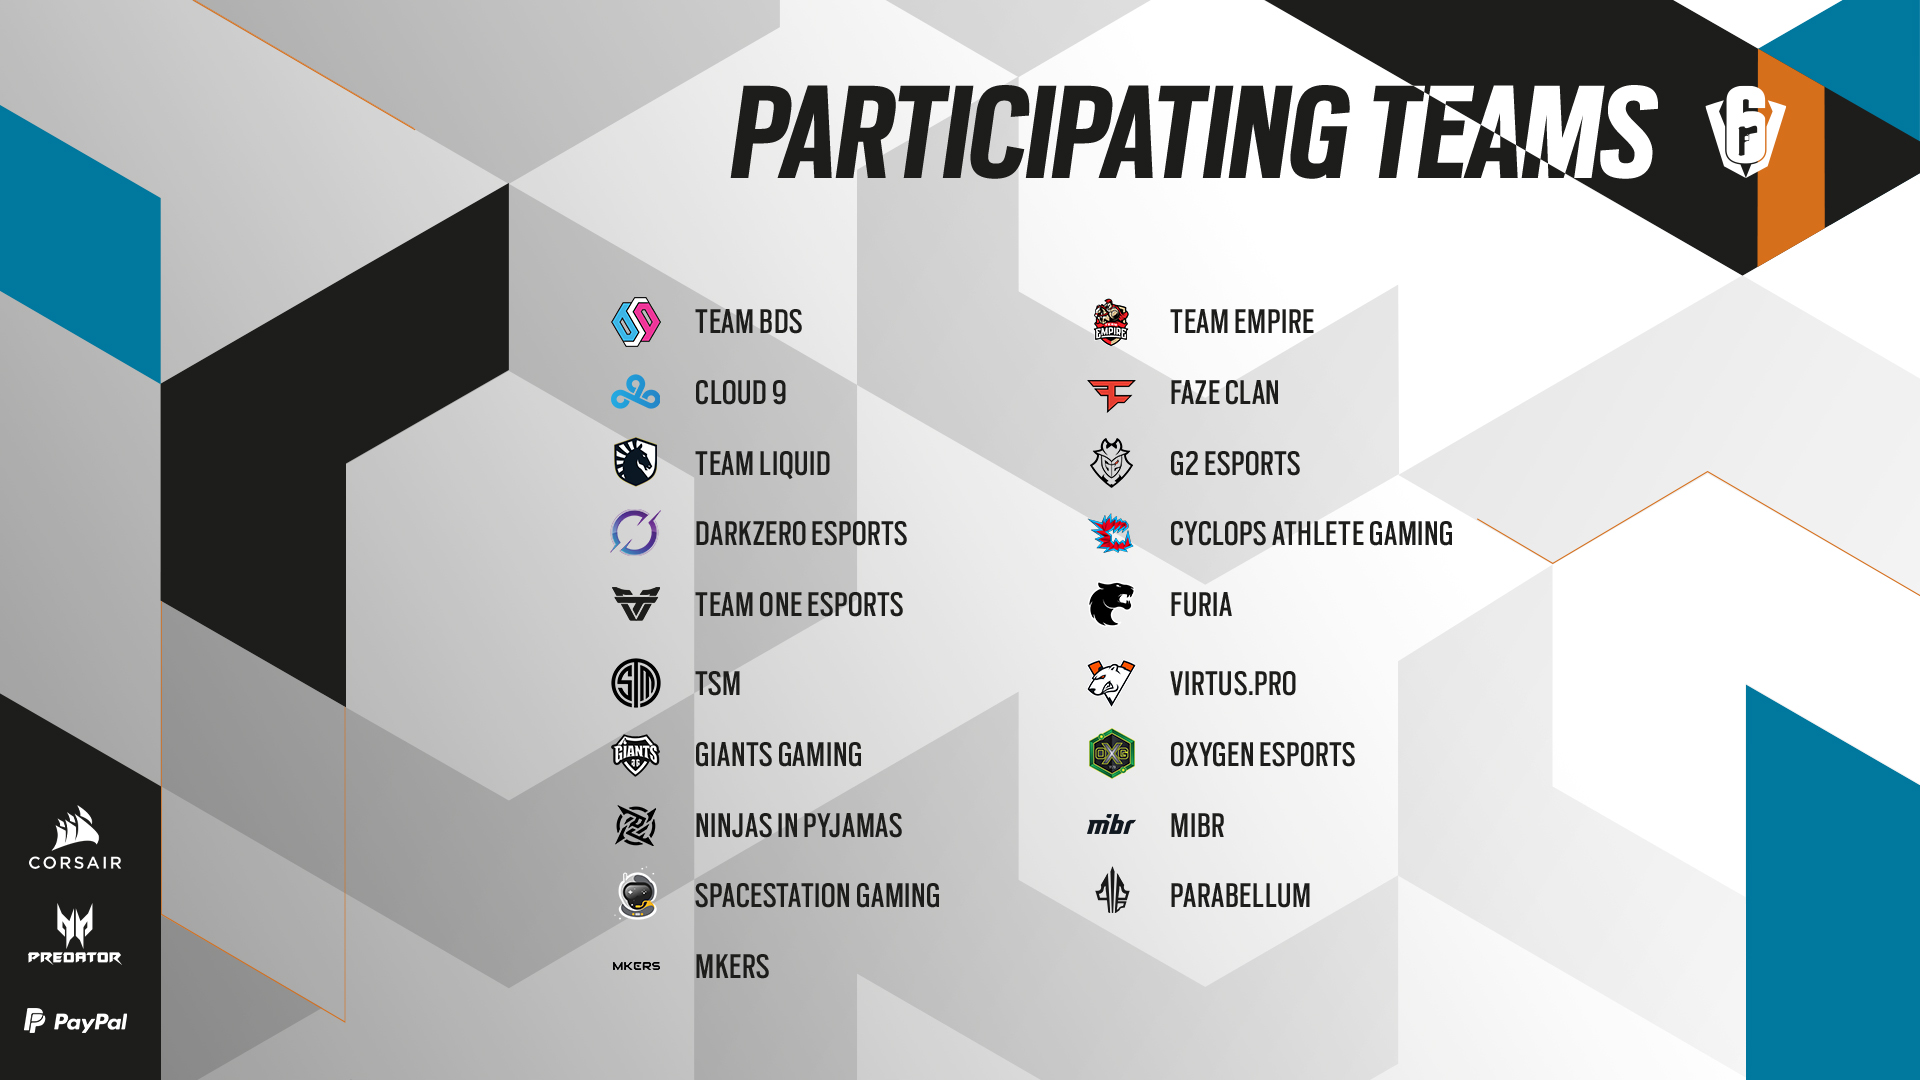 R6Esports_SI2021_Participating_teams_20210427_6PM_CEST-2510226087ace01b4bf4.89834874.jpg